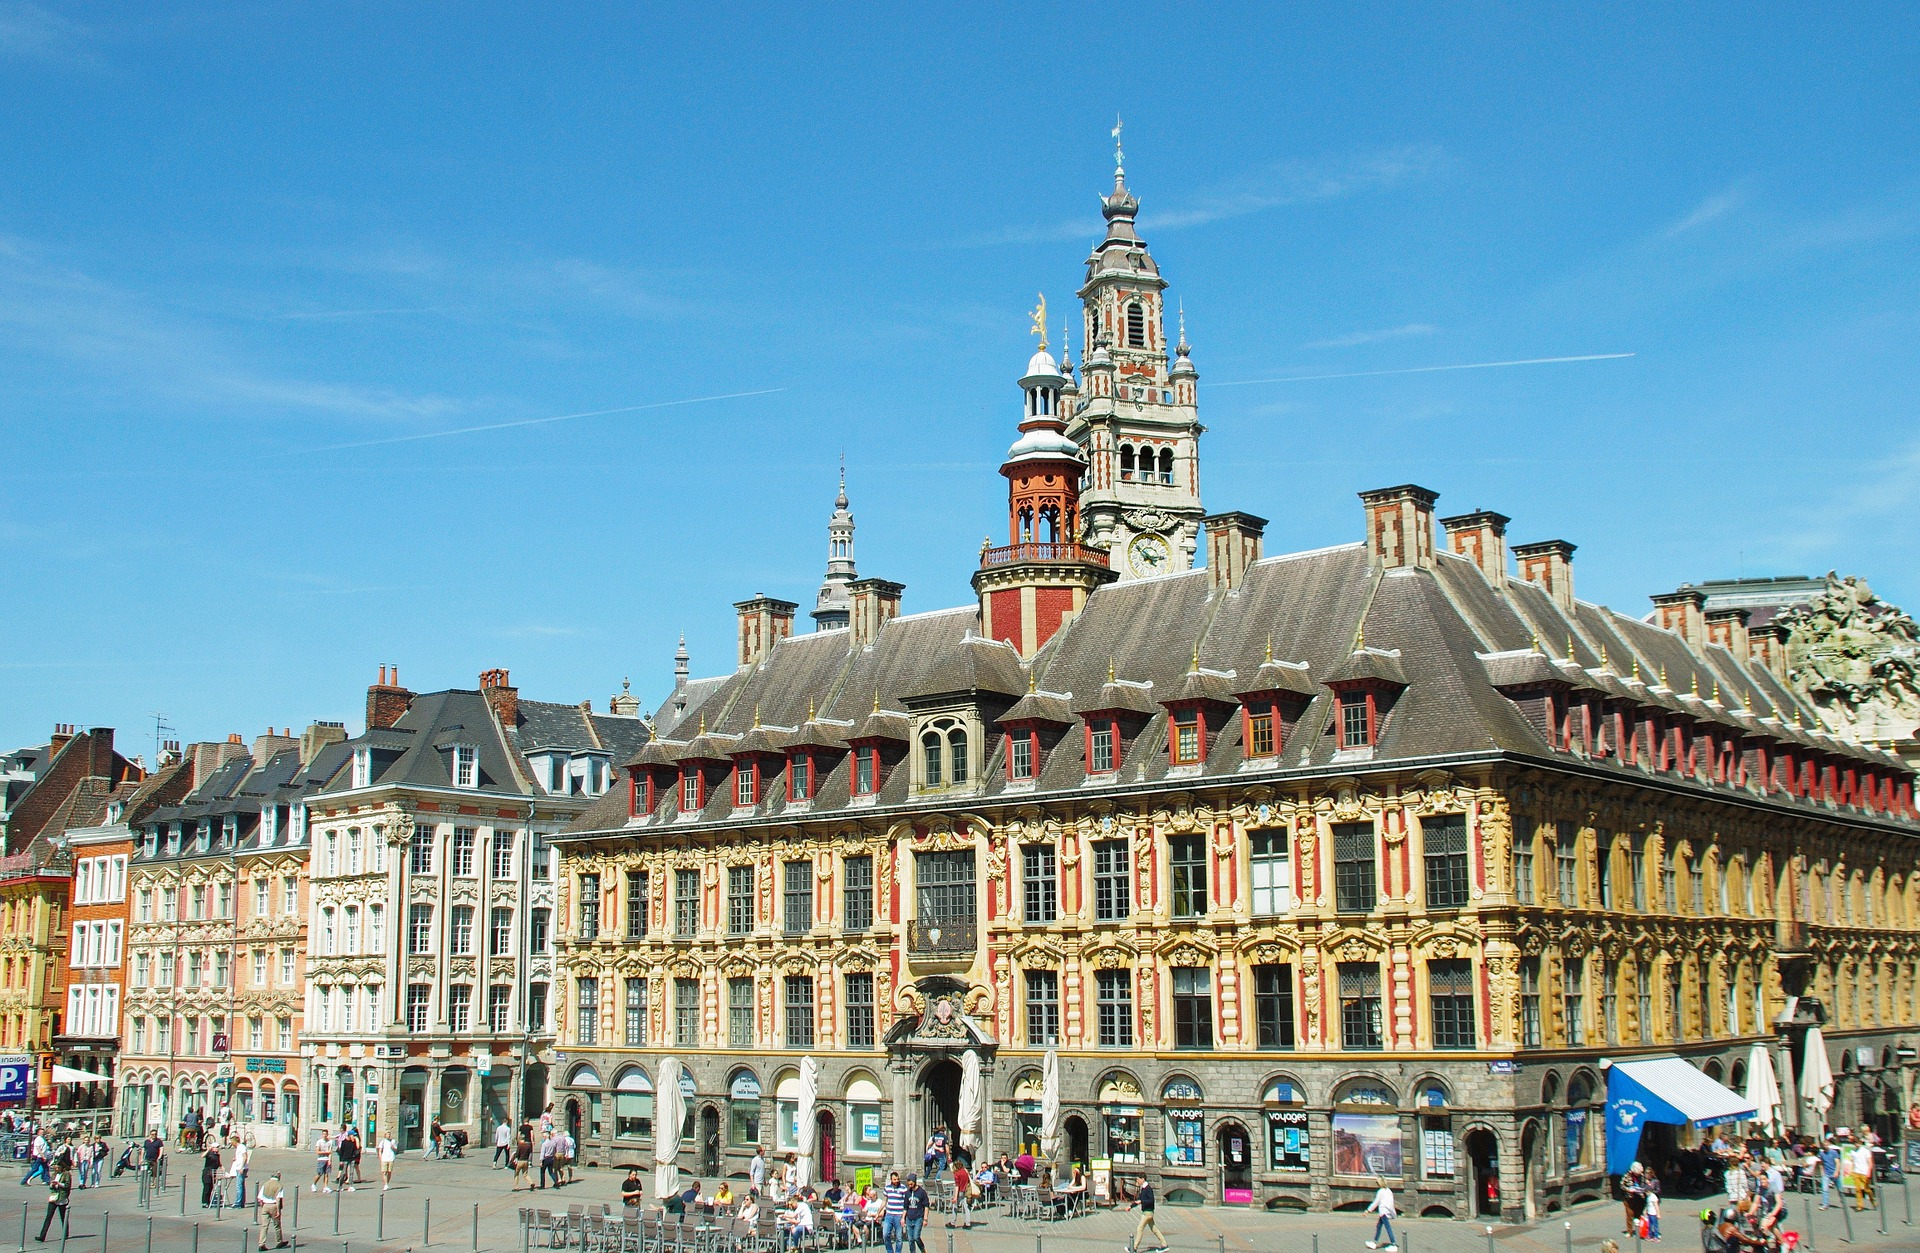 Lille_Grand_Place.jpg?1560776624